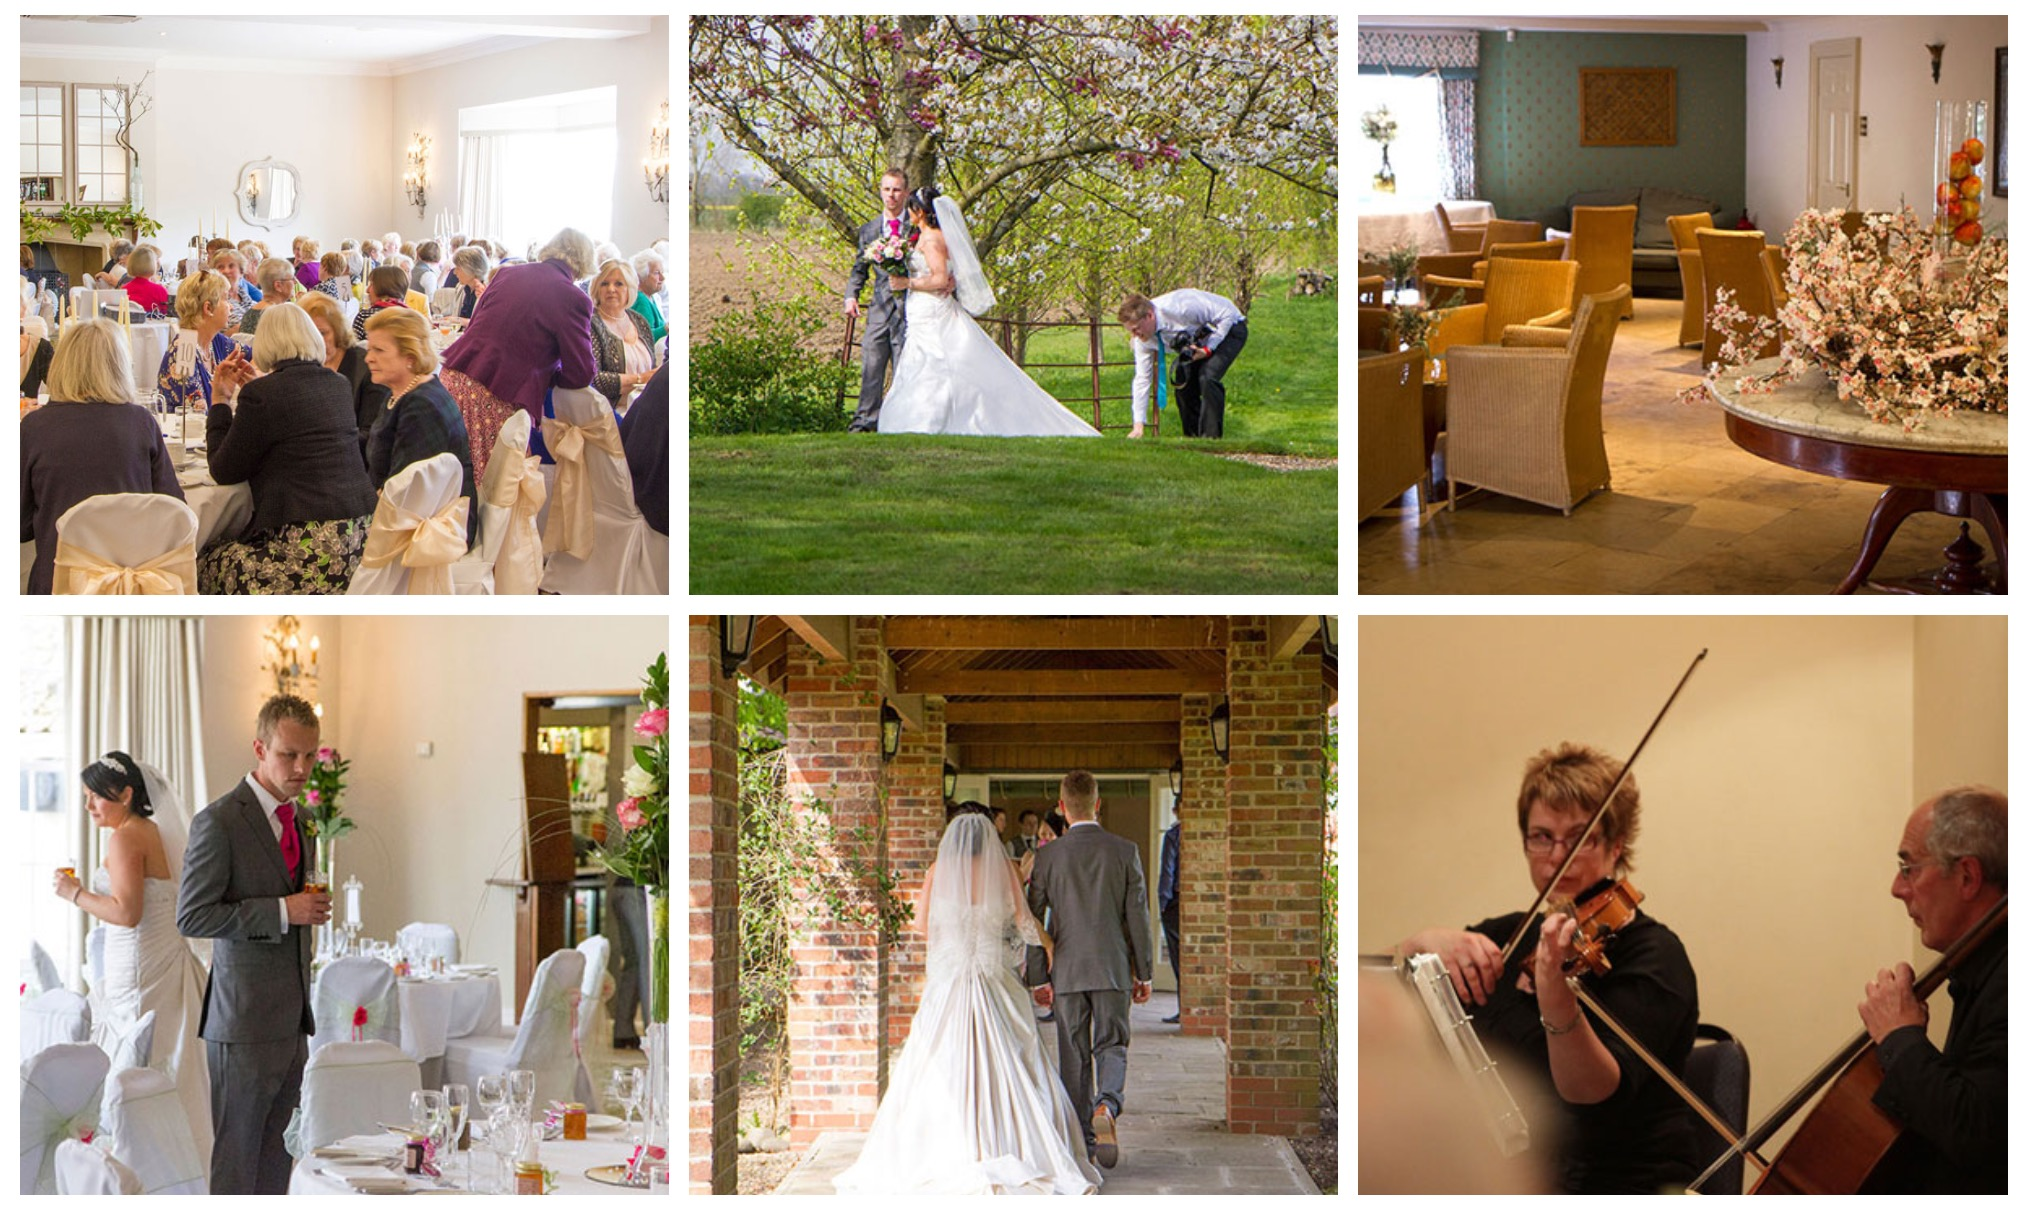 Weddings at Tickton Grange